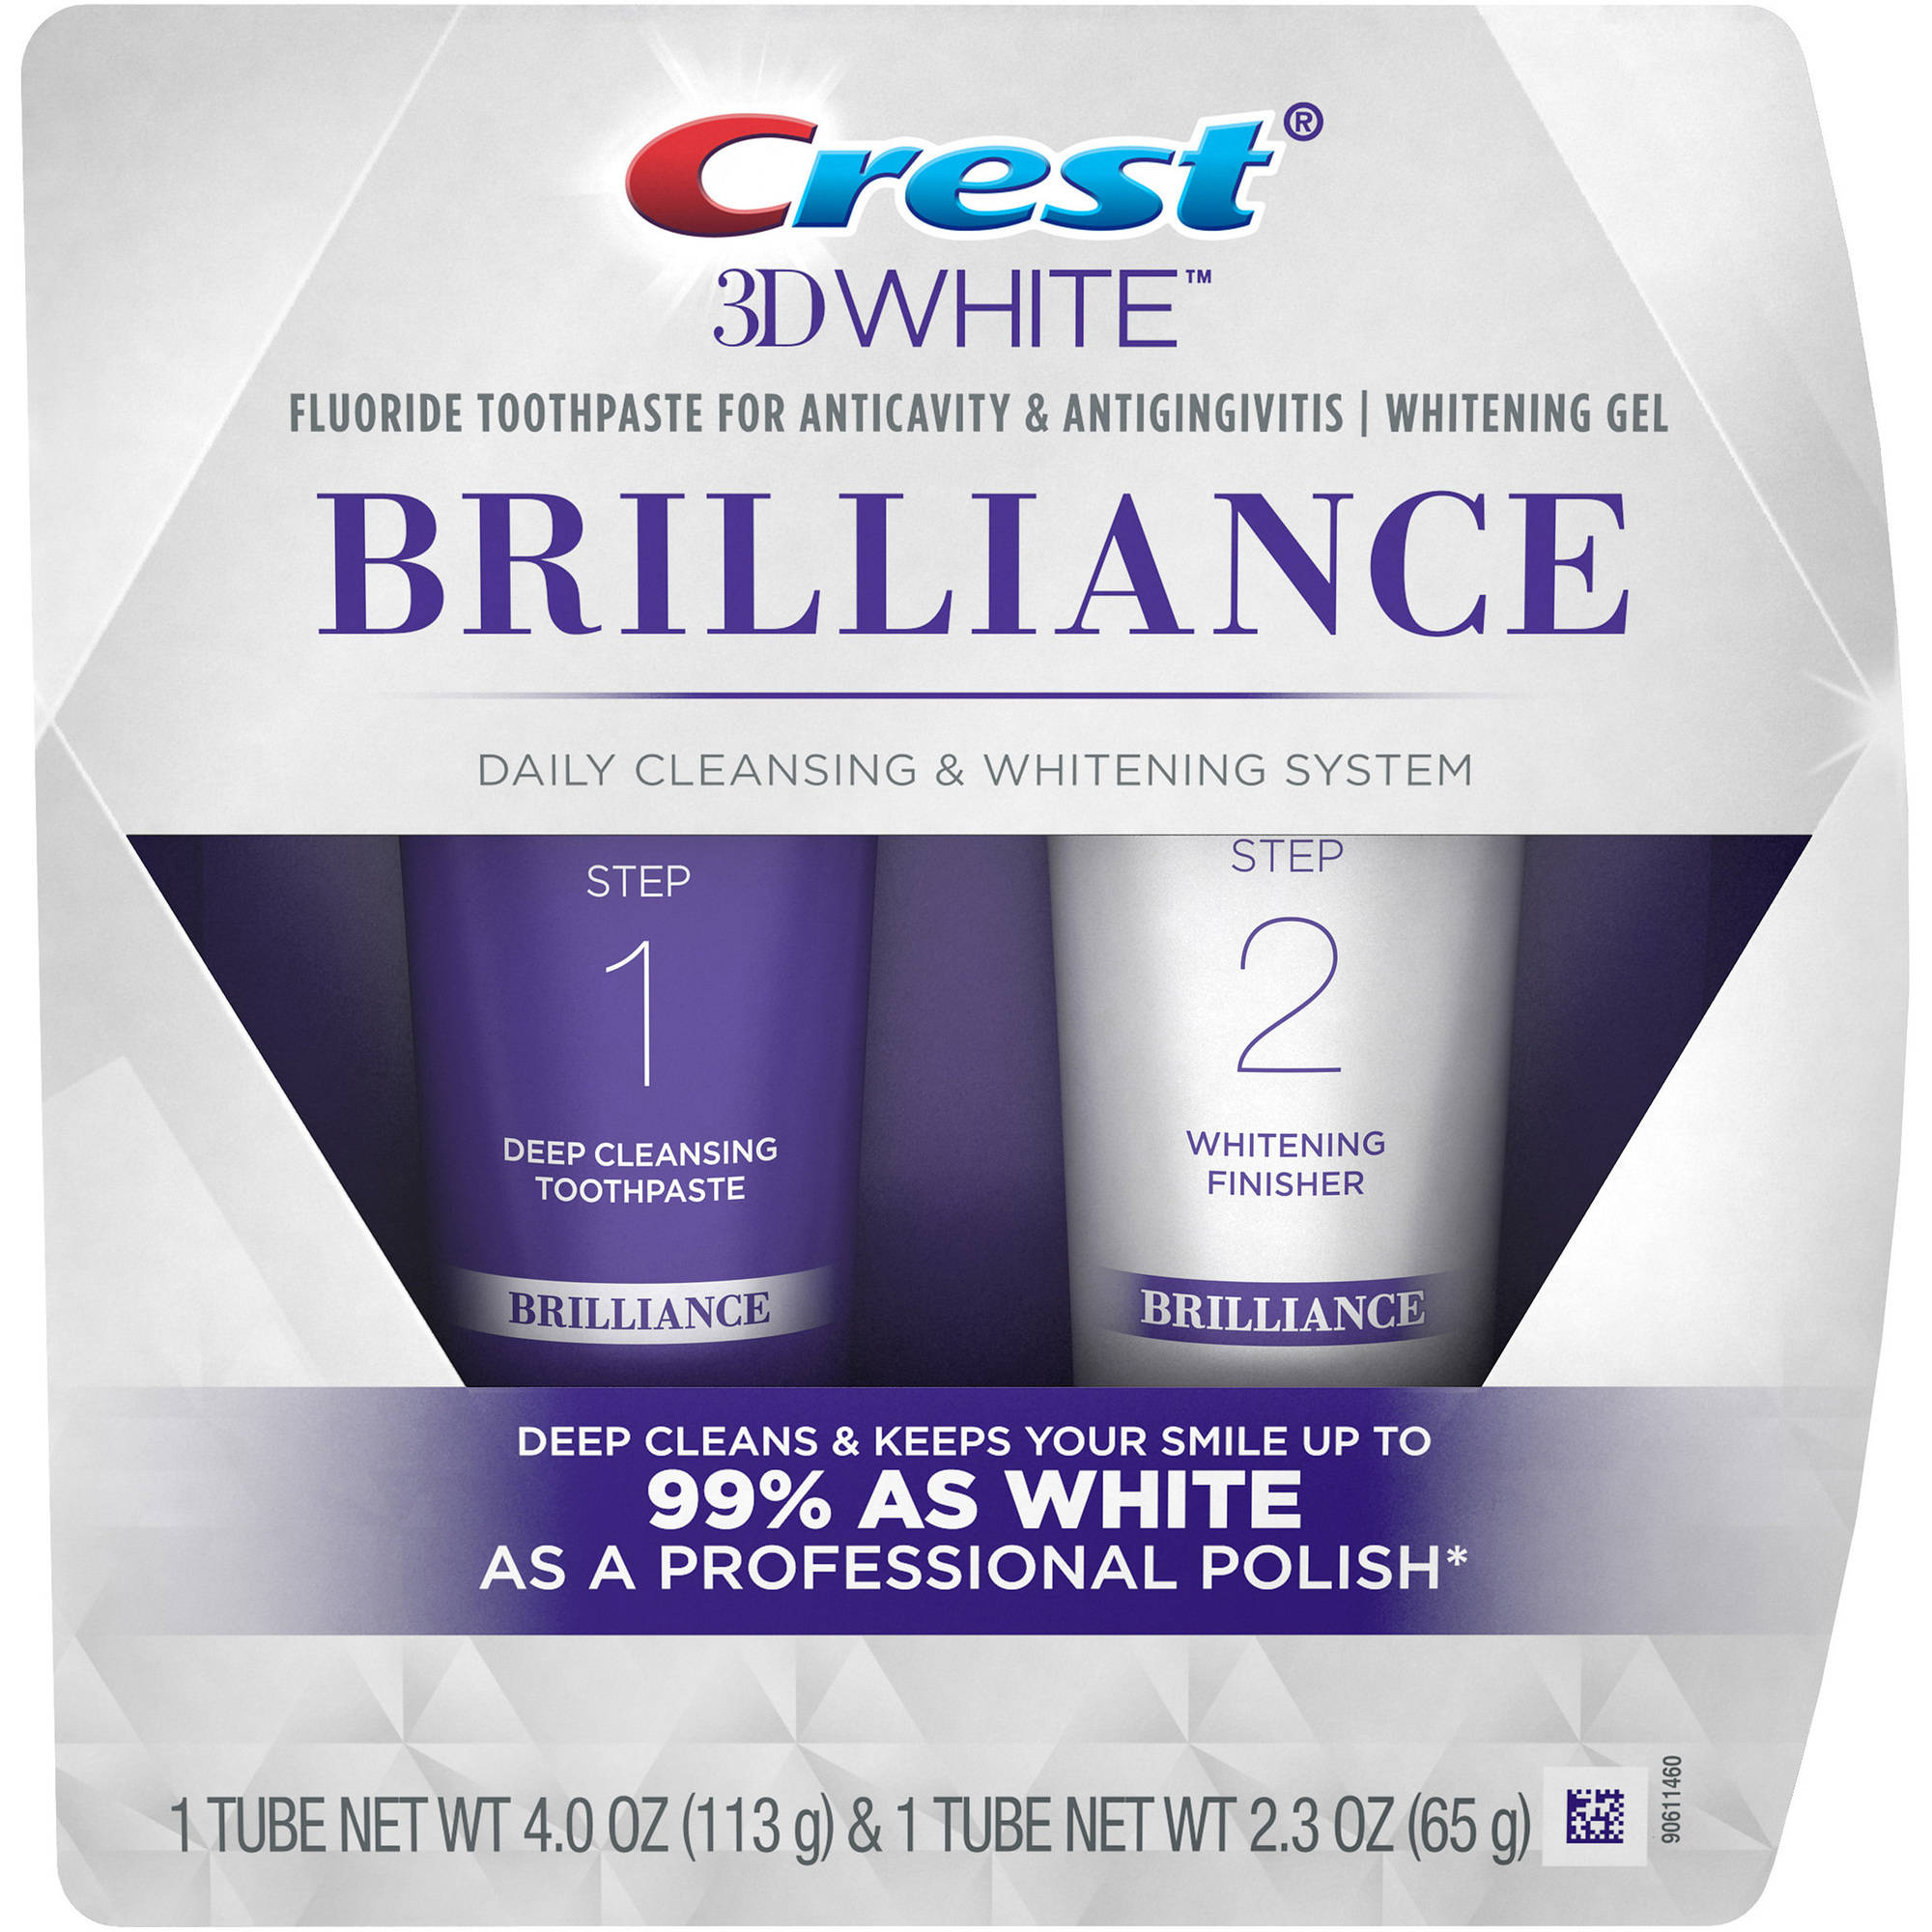 Crest 3D White Brilliance Daily Cleansing Toothpaste and Whitening Gel System, 2 pc